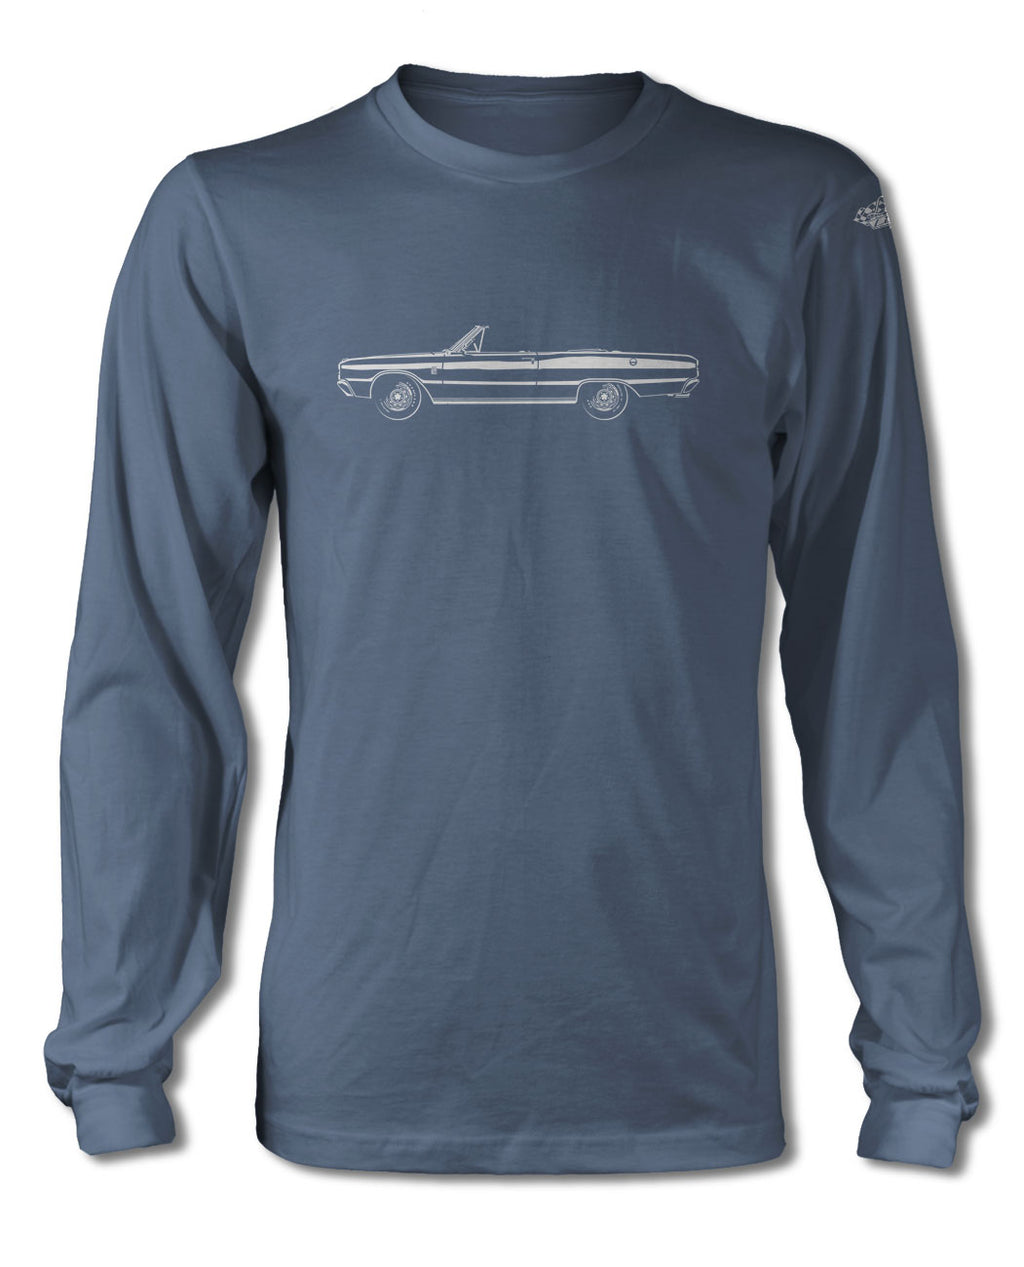 1967 Dodge Dart GT Convertible T-Shirt - Long Sleeves - Side View